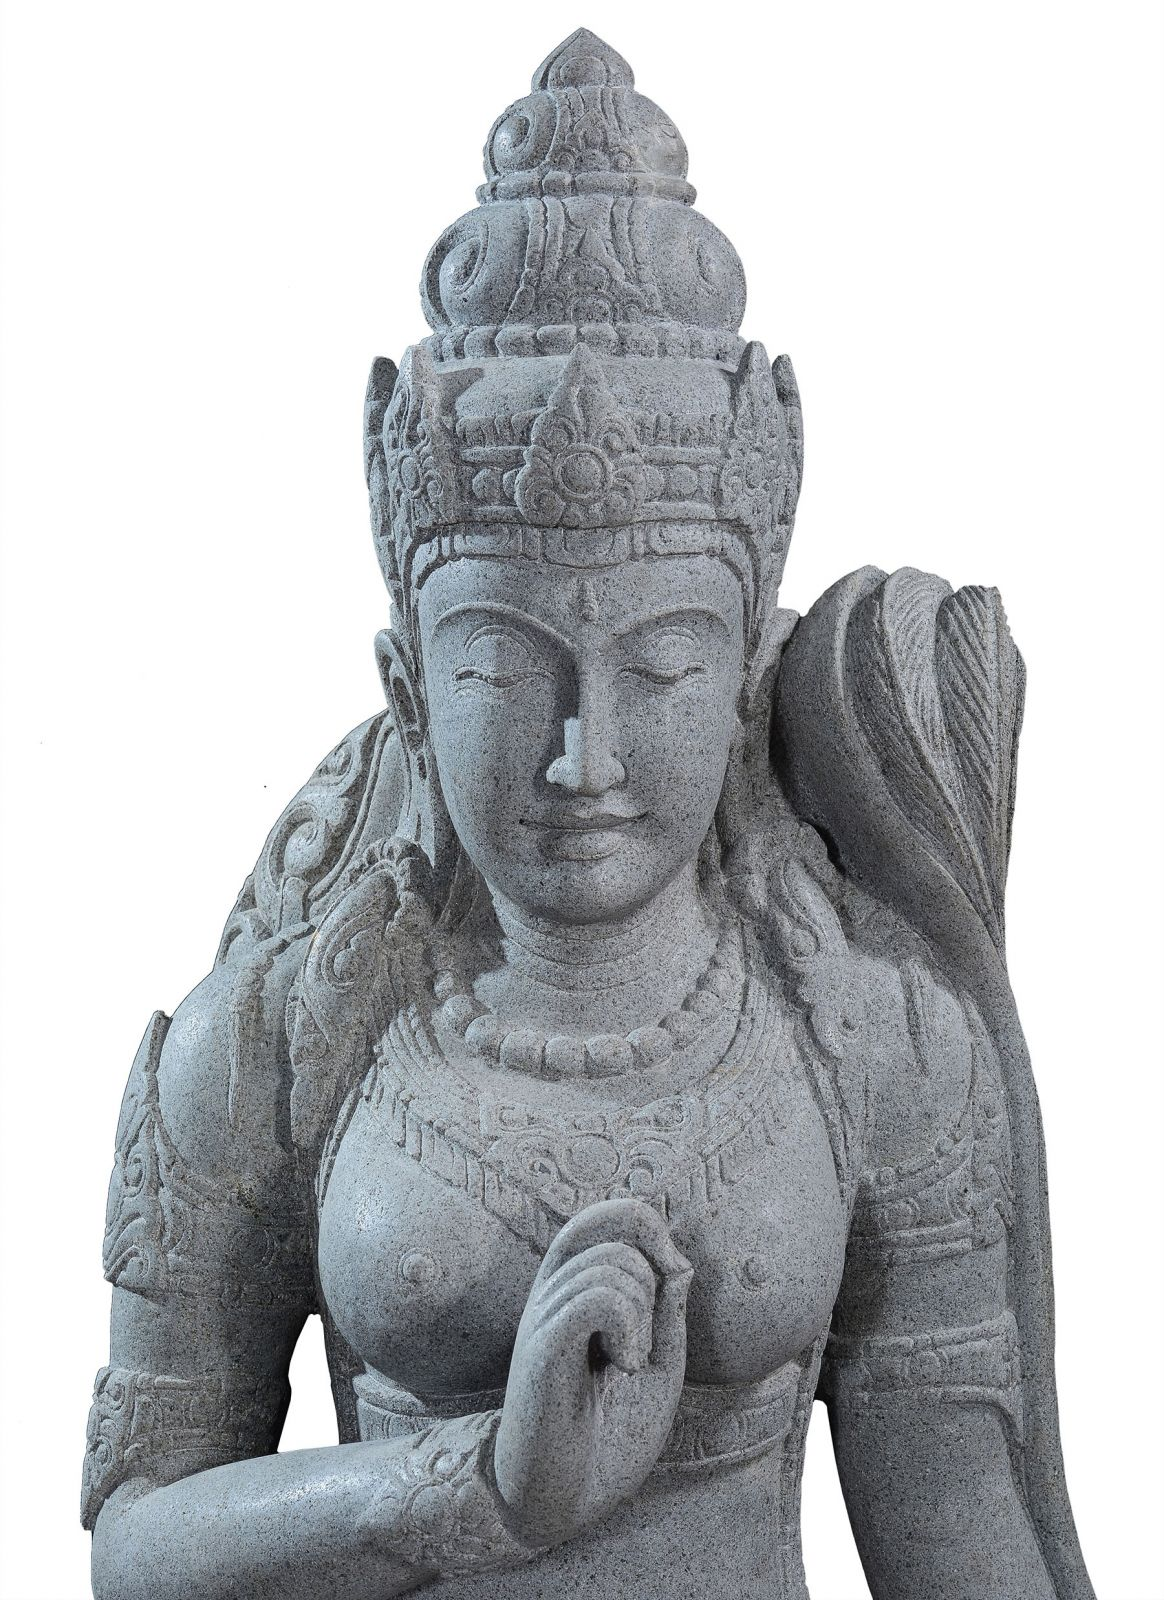 Large garden Stone statue of sitting Dewi Sri - Goddess of the earth